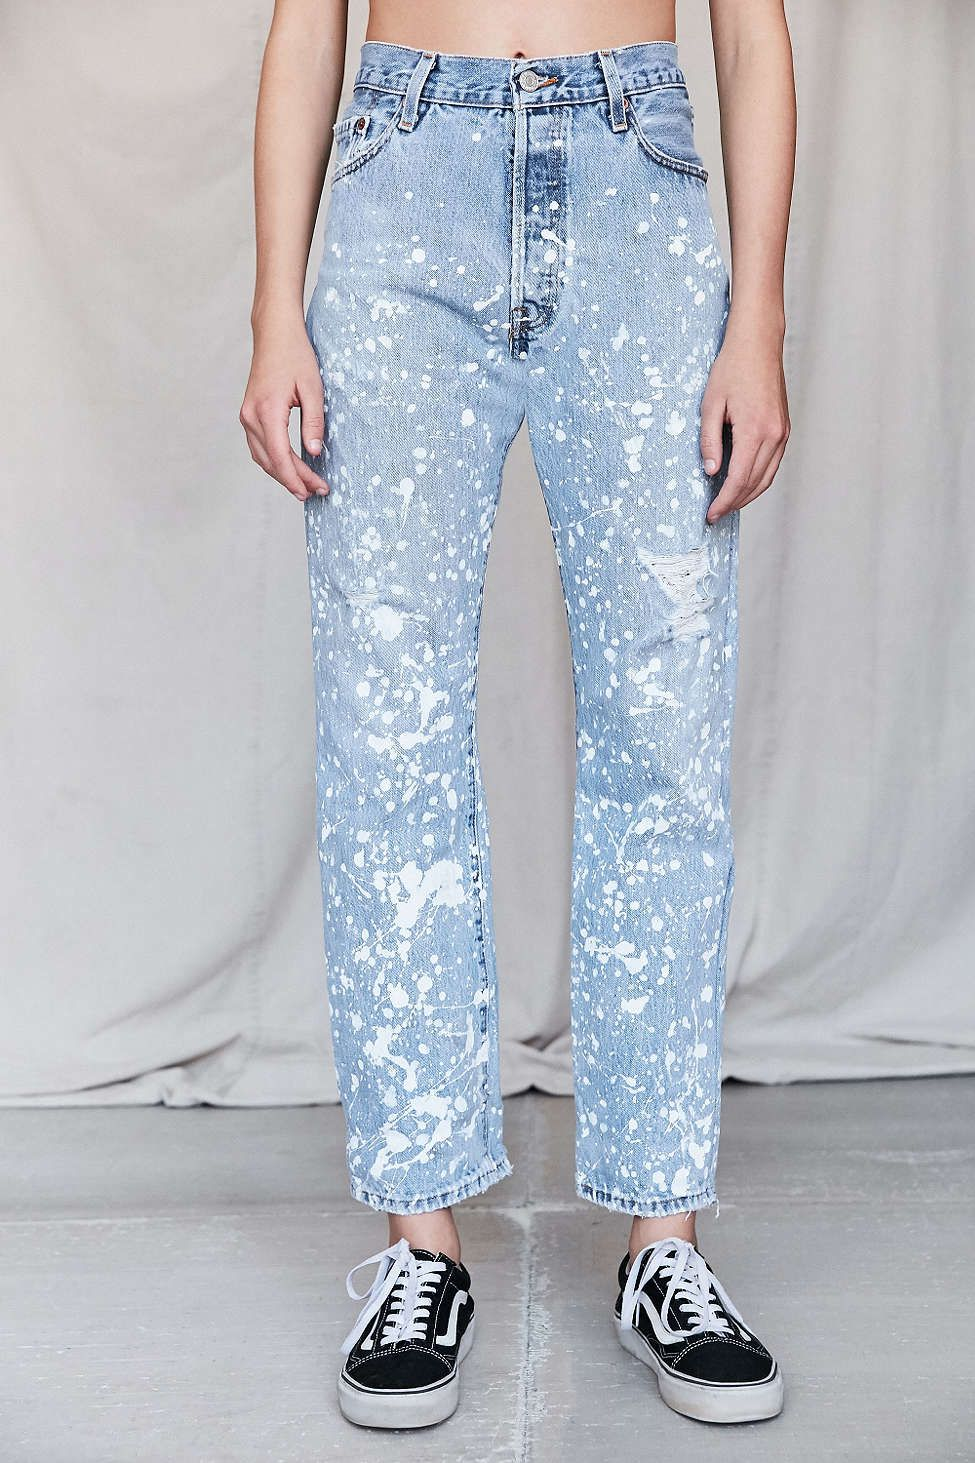 a model with white splatter painted jeans